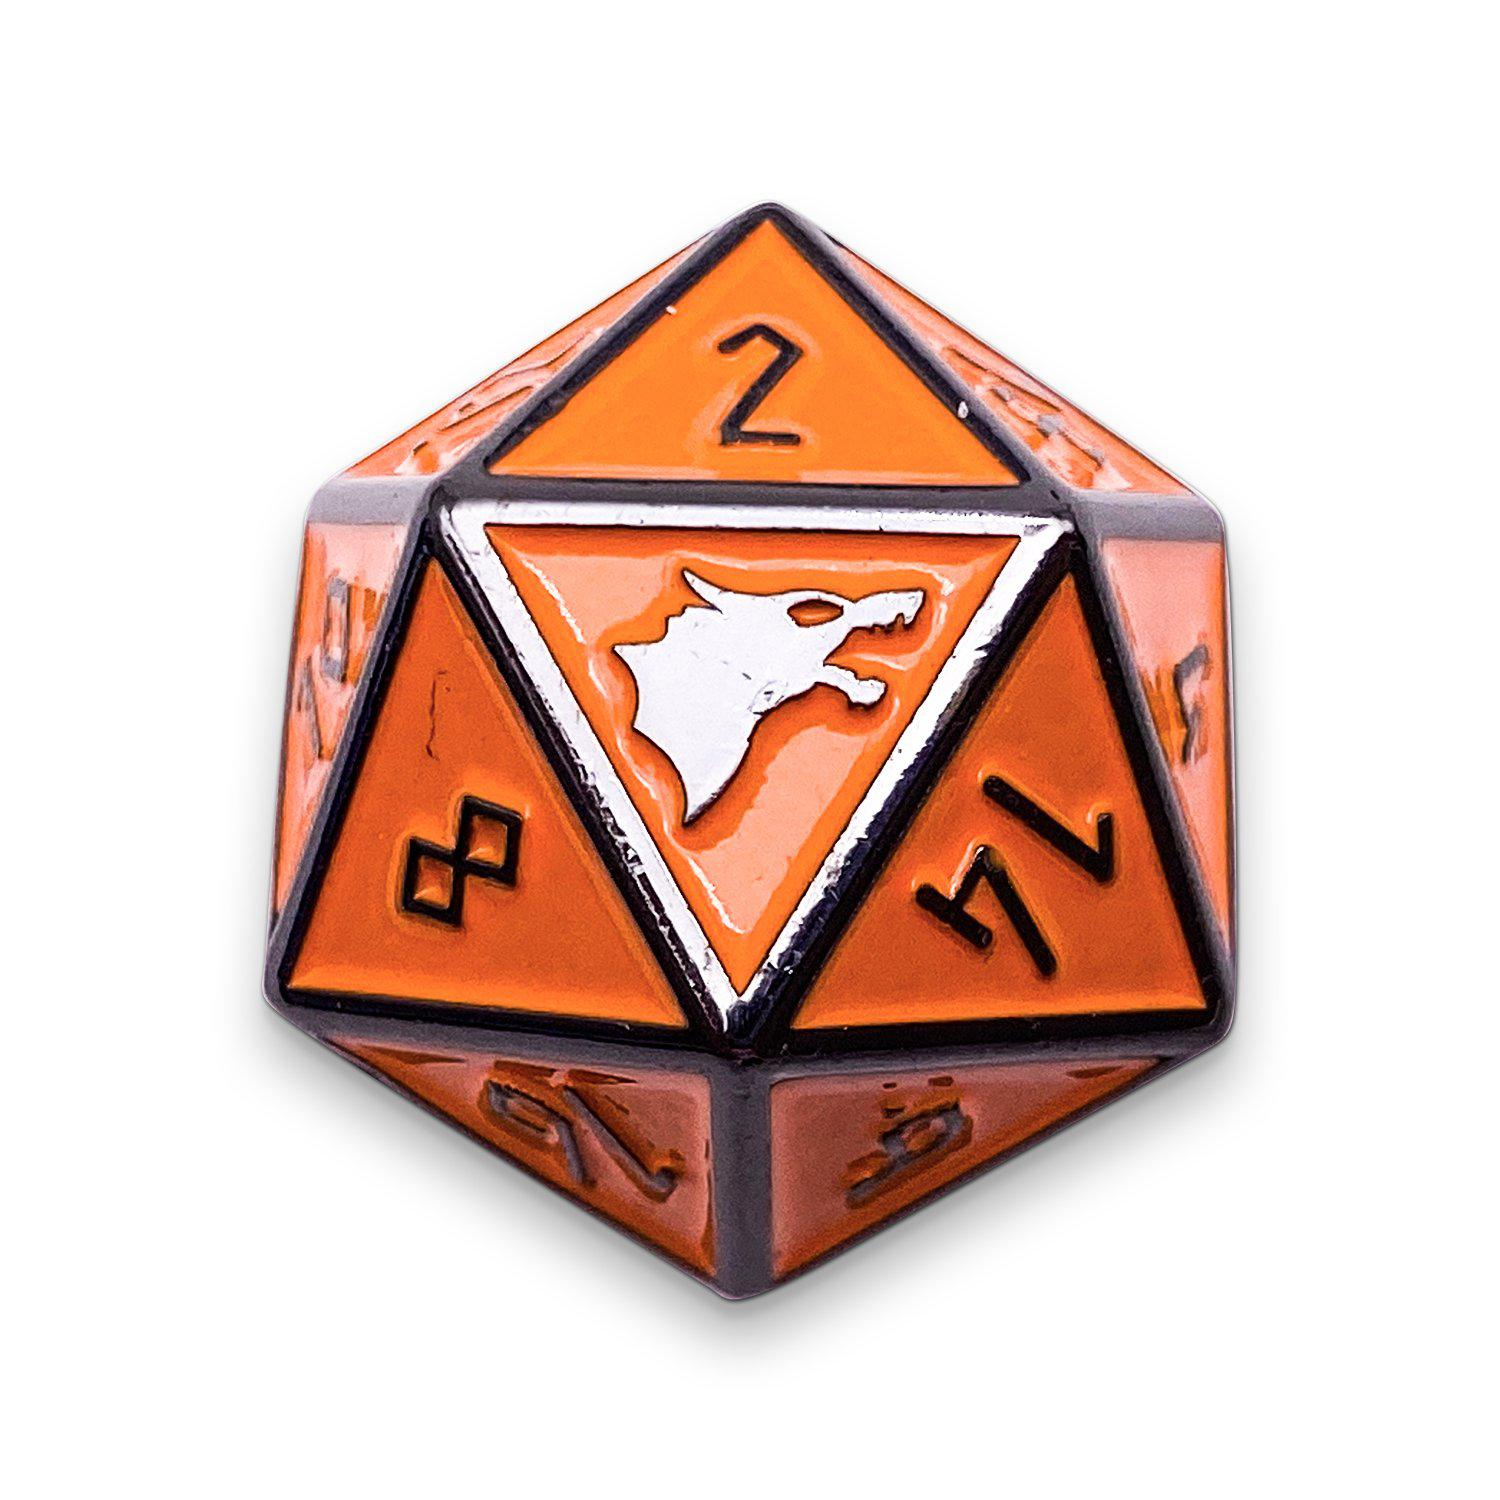 Molten Lava - Norse Themed Metal D20